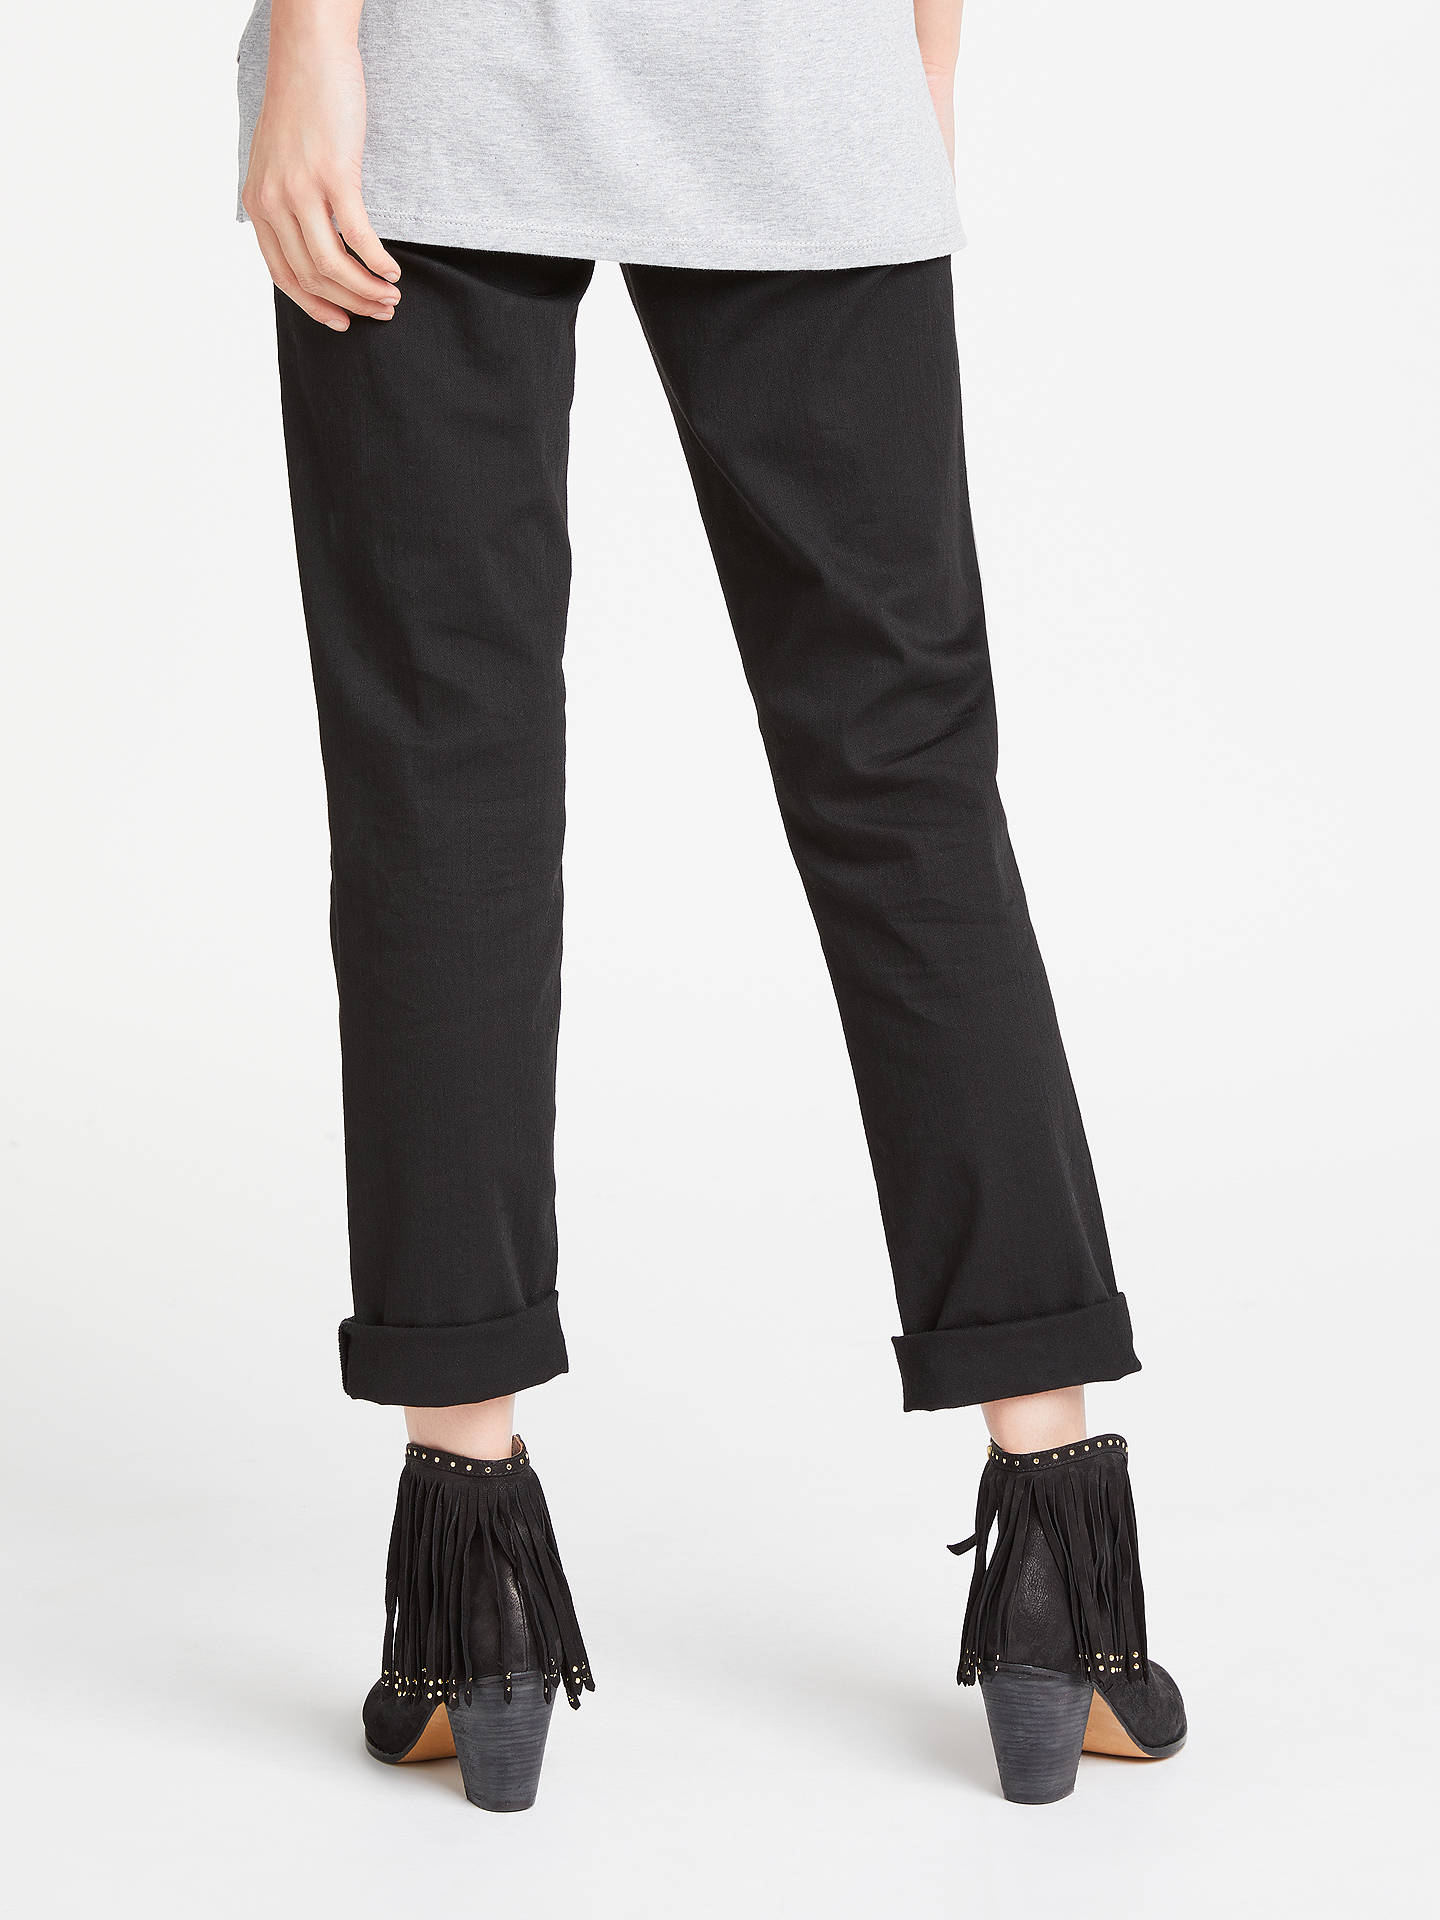 BuyAND/OR Silverlake Straight Leg Jeans, Black, 26 Online at johnlewis.com